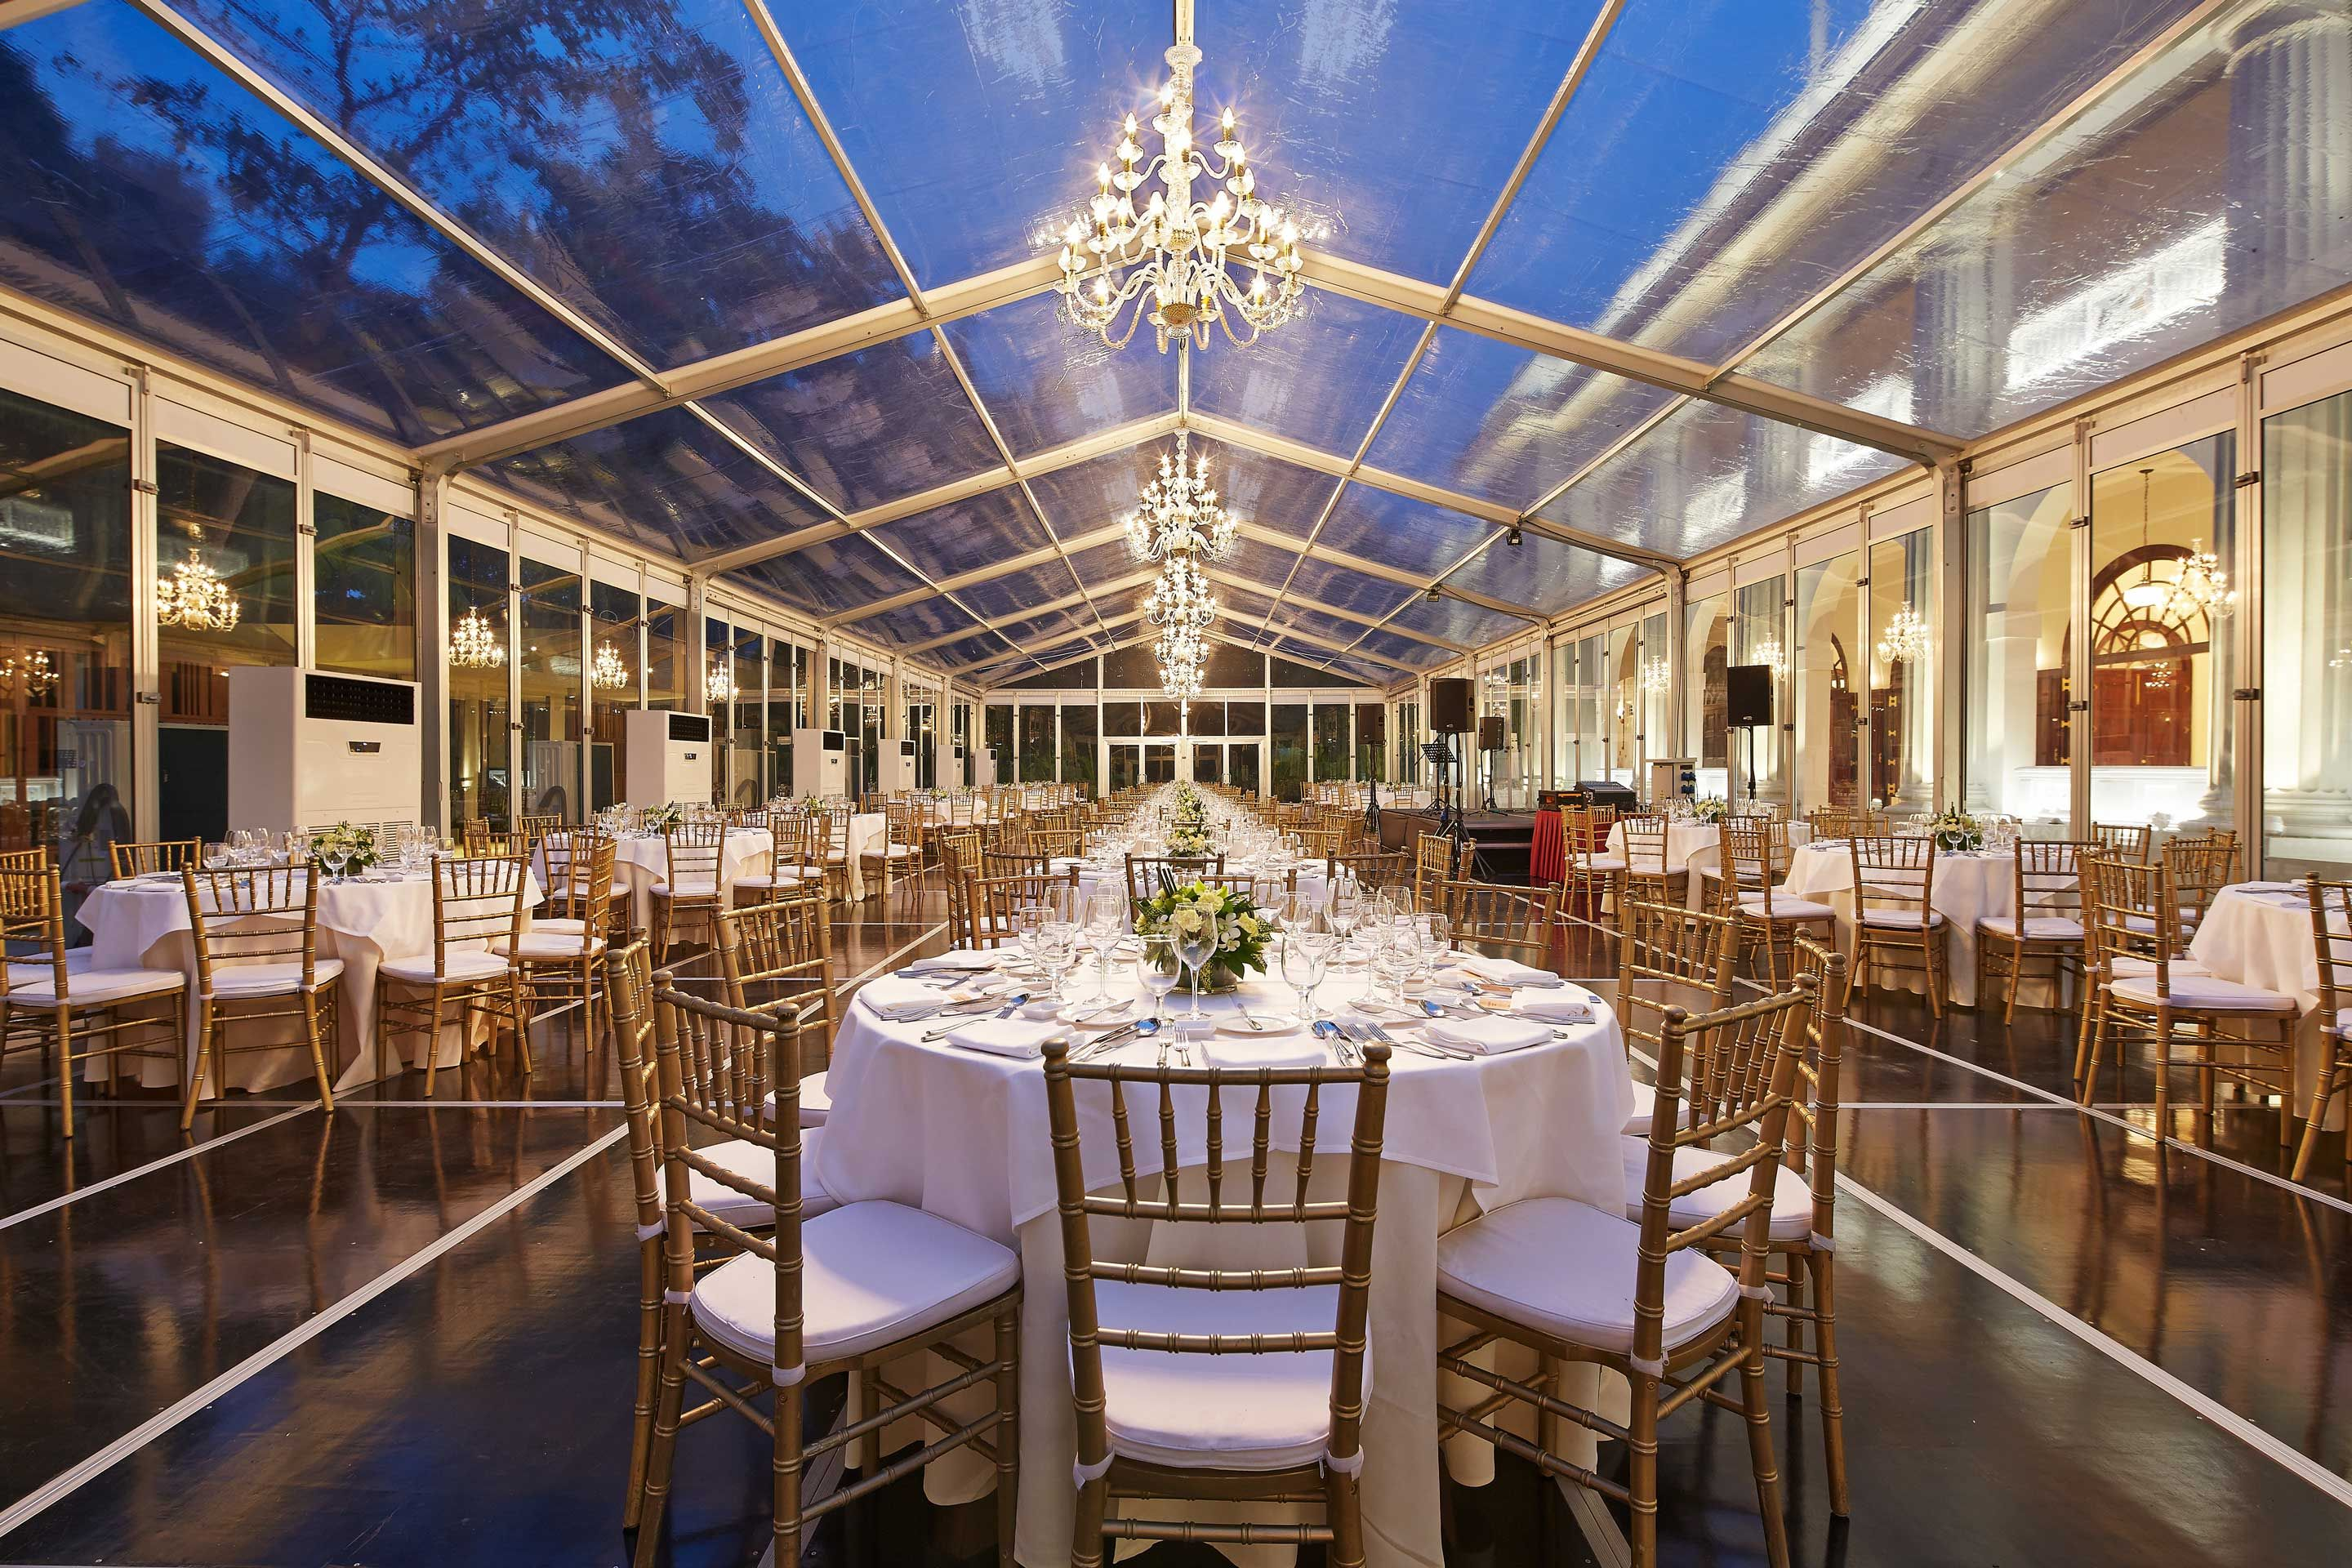 Greenhouses To Ballrooms Breathtaking Glass Wedding Venues In Singapore Her World Singapore Wedding Venues Venues Ballrooms